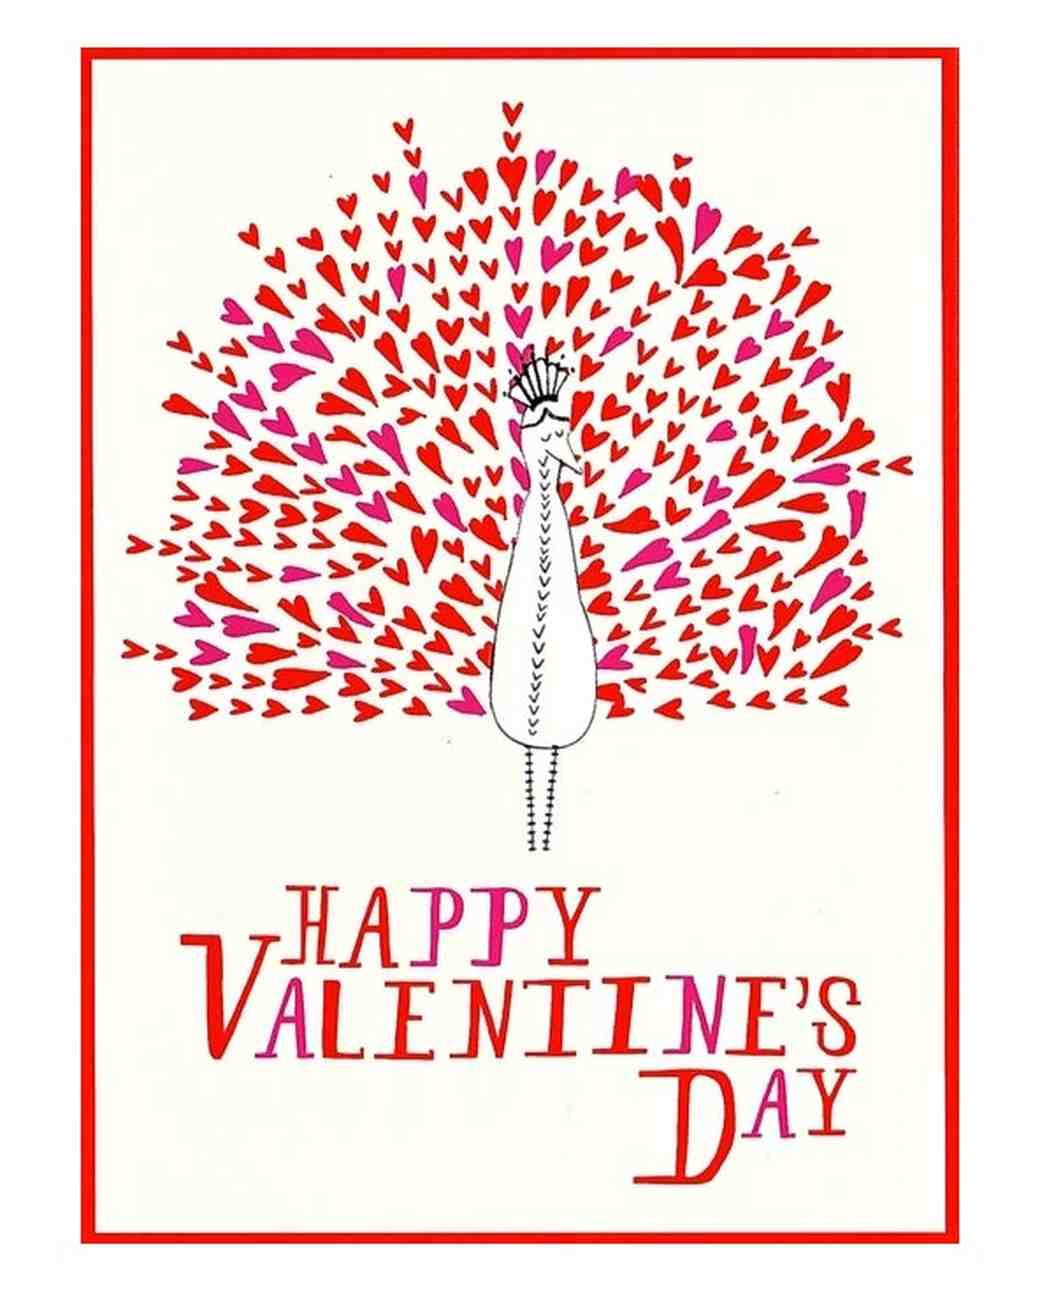 vday-cards-we-love-mr-boddingtons-studio-peacock-with-heart-feathers-0216.jpg